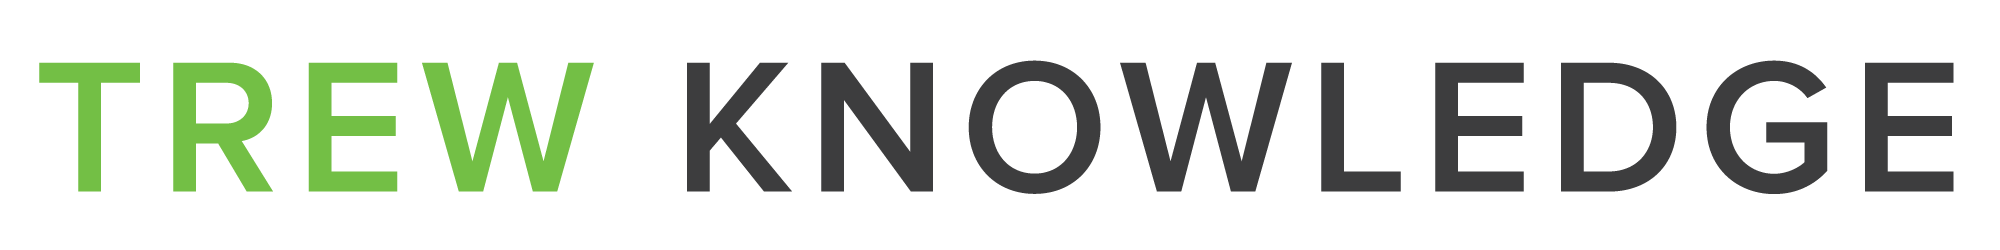 Trew Knowledge logo